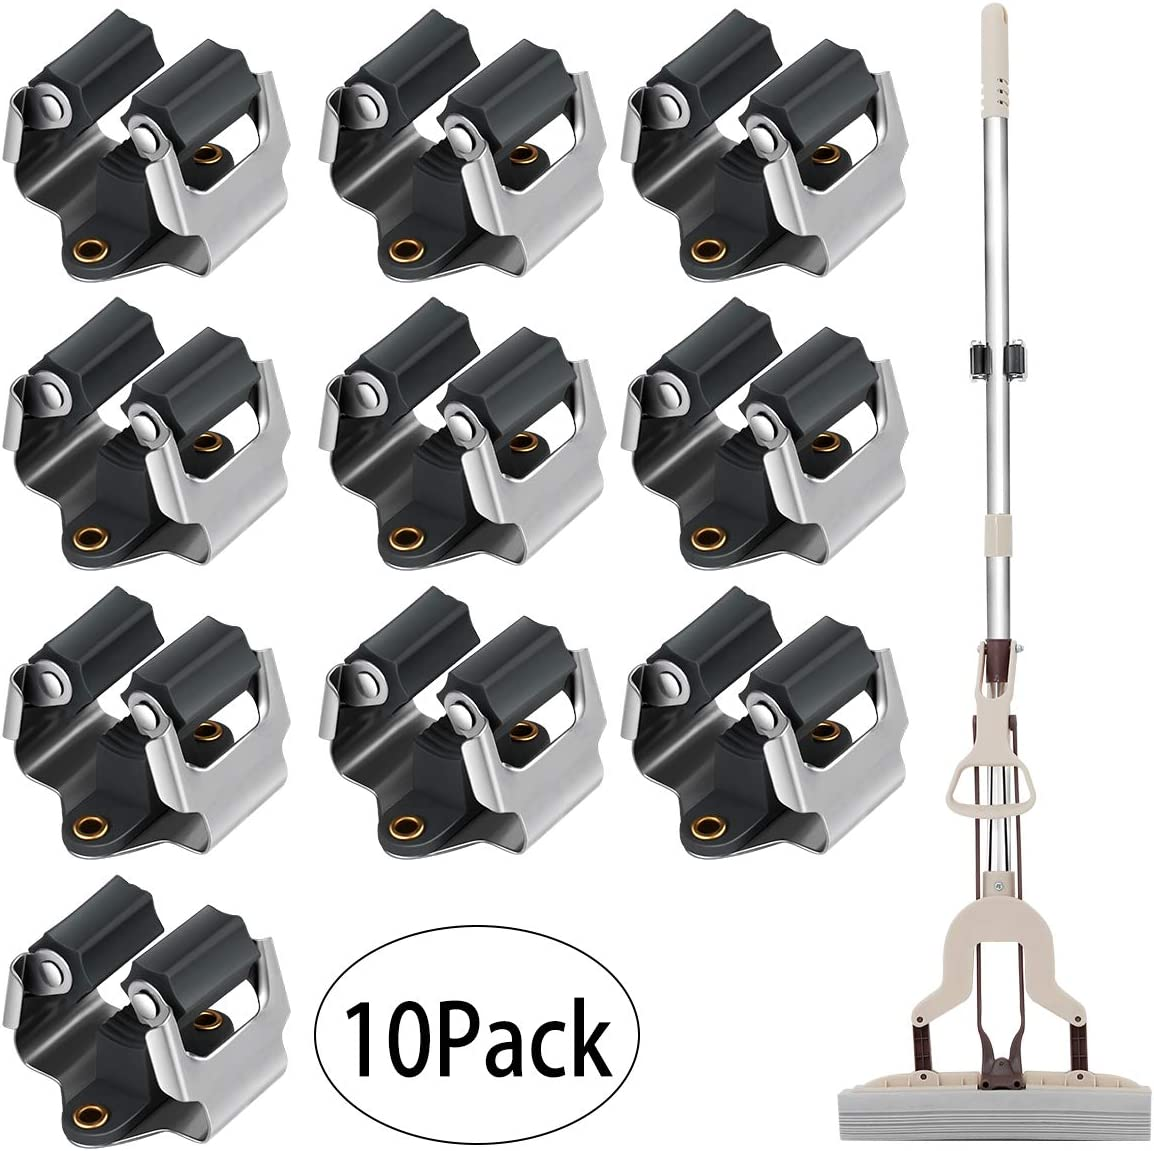 black/&white 6 pack 3-H Mop and Broom Holder Wall Mounted Garden Storage Rack